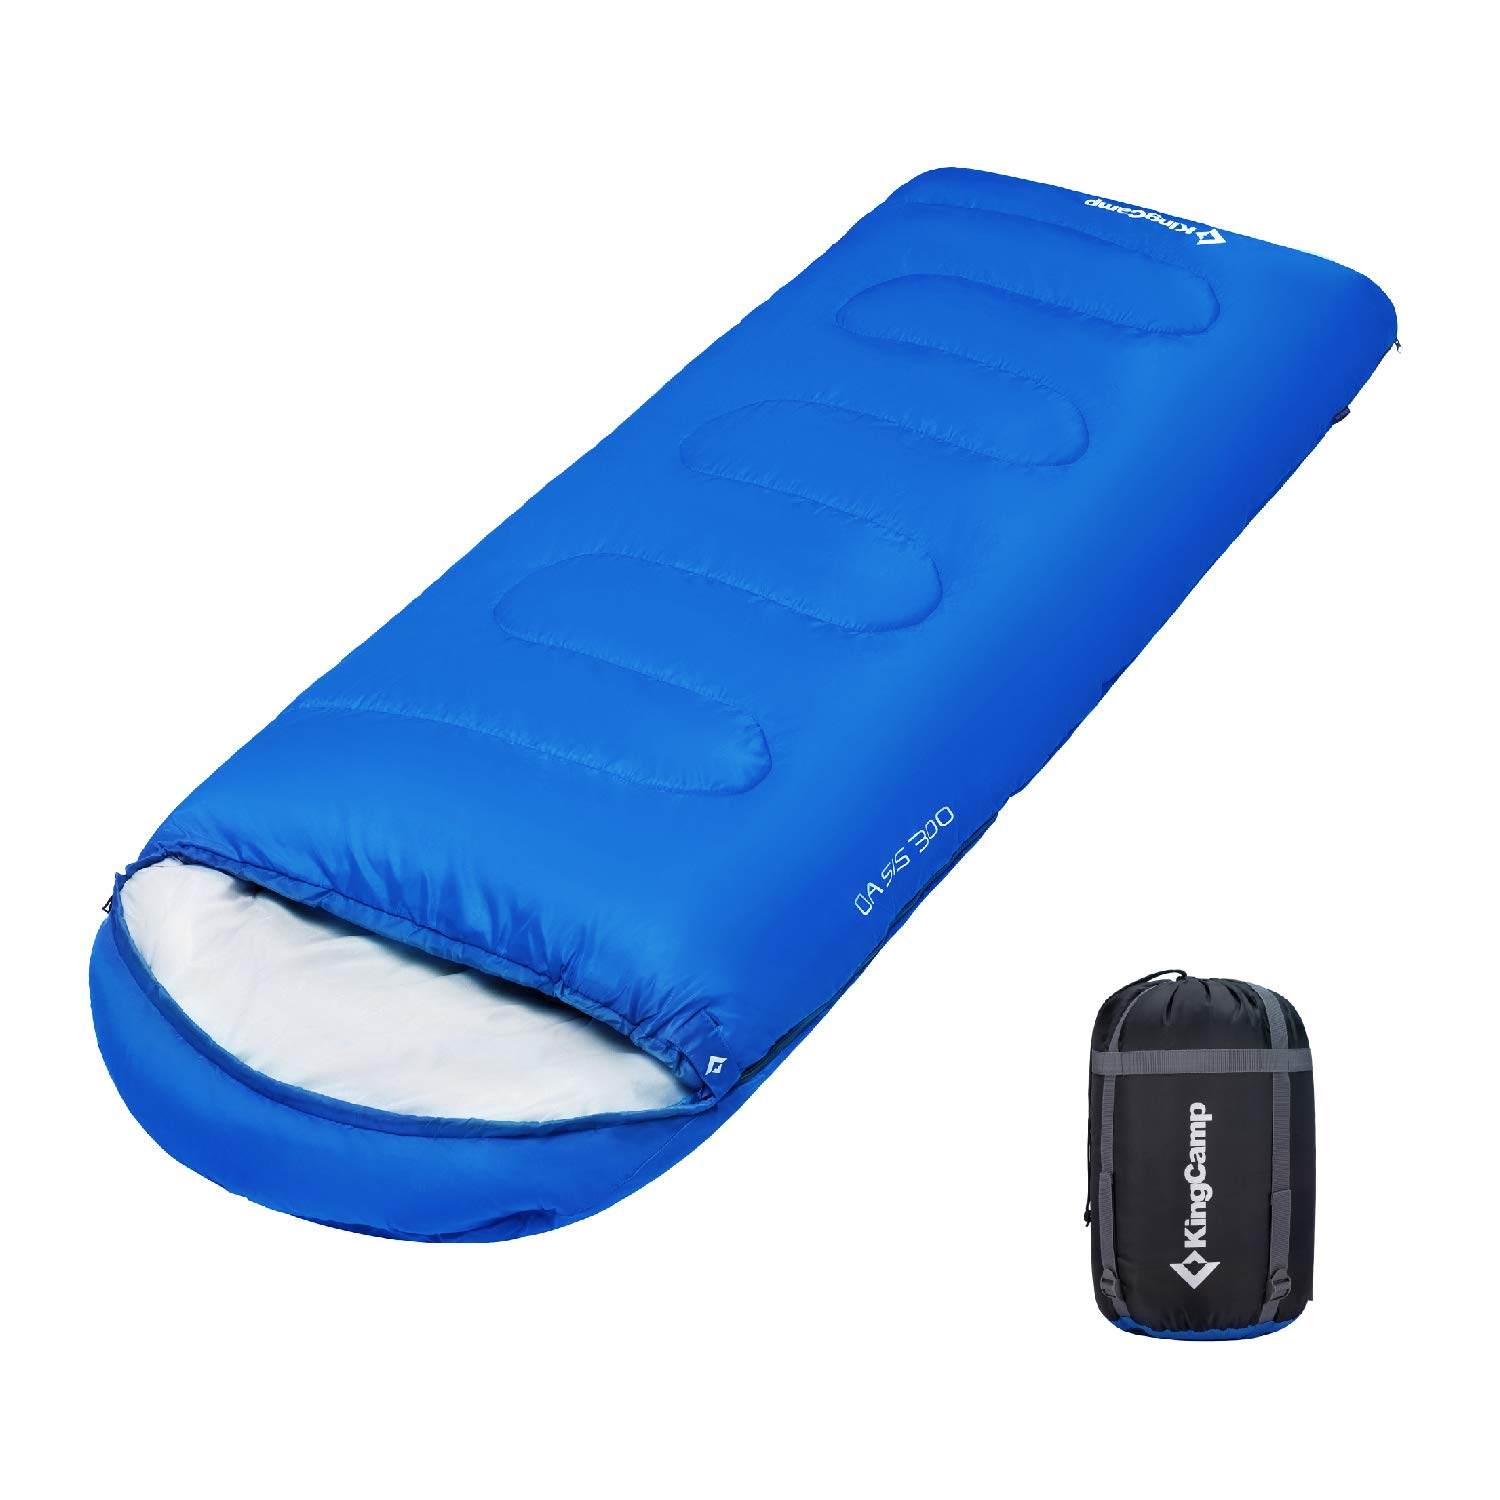 KingCamp Envelope Sleeping Bag 4 Season Lightweight Comfort with Compression Sack Camping Backpack 8.6F/-13C by KingCamp